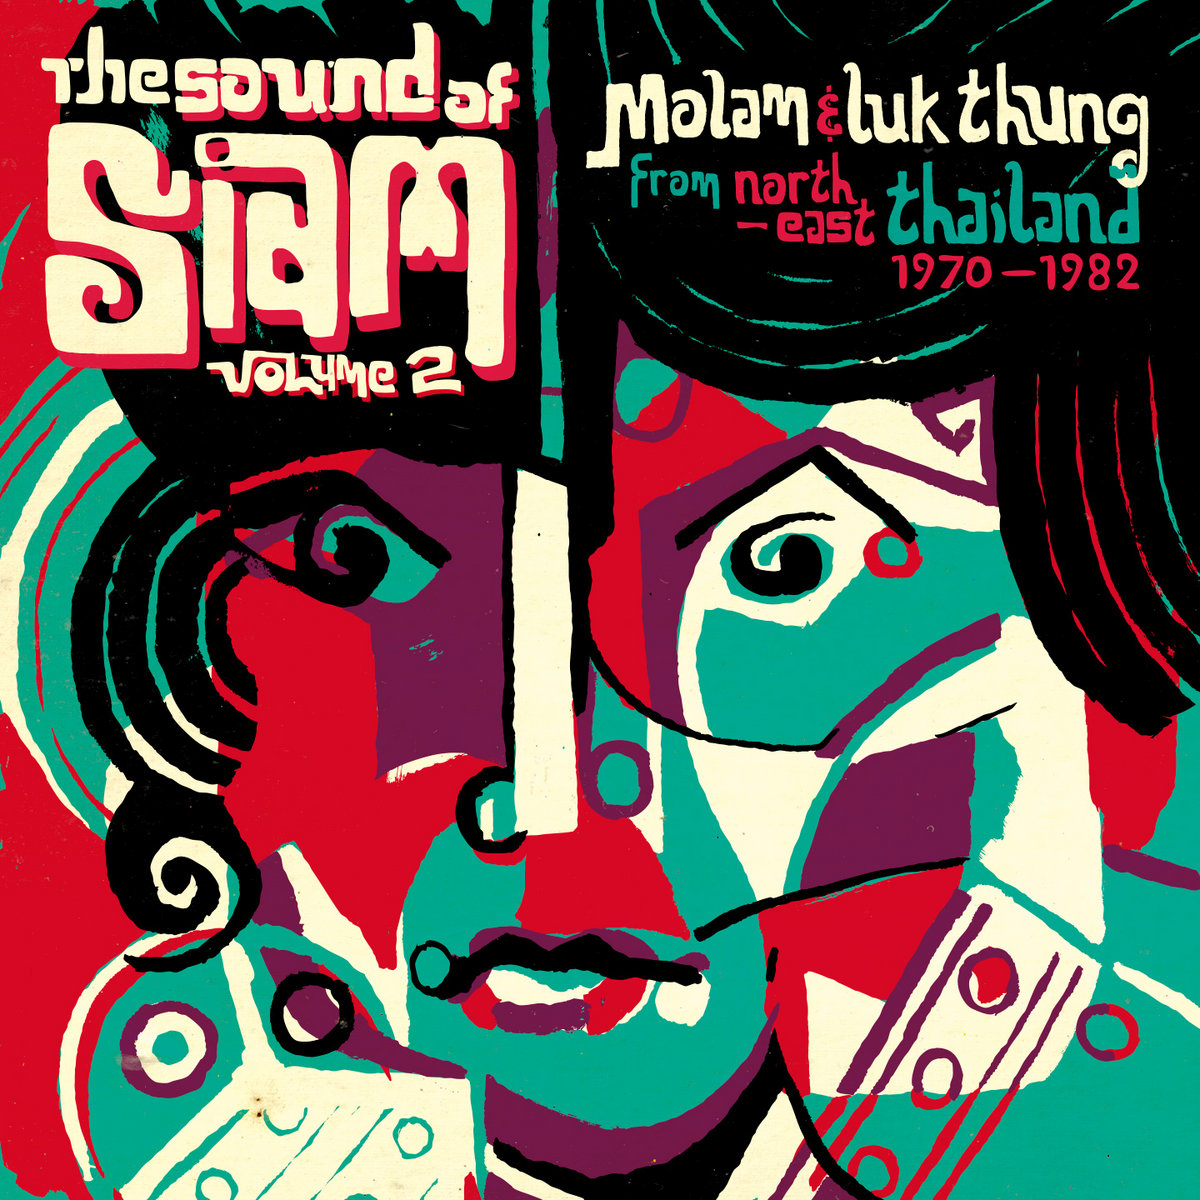 from Sound of Siam Volume 2 Molam & Luk Thung from North East Thailand 1970 1982 by Various Artists